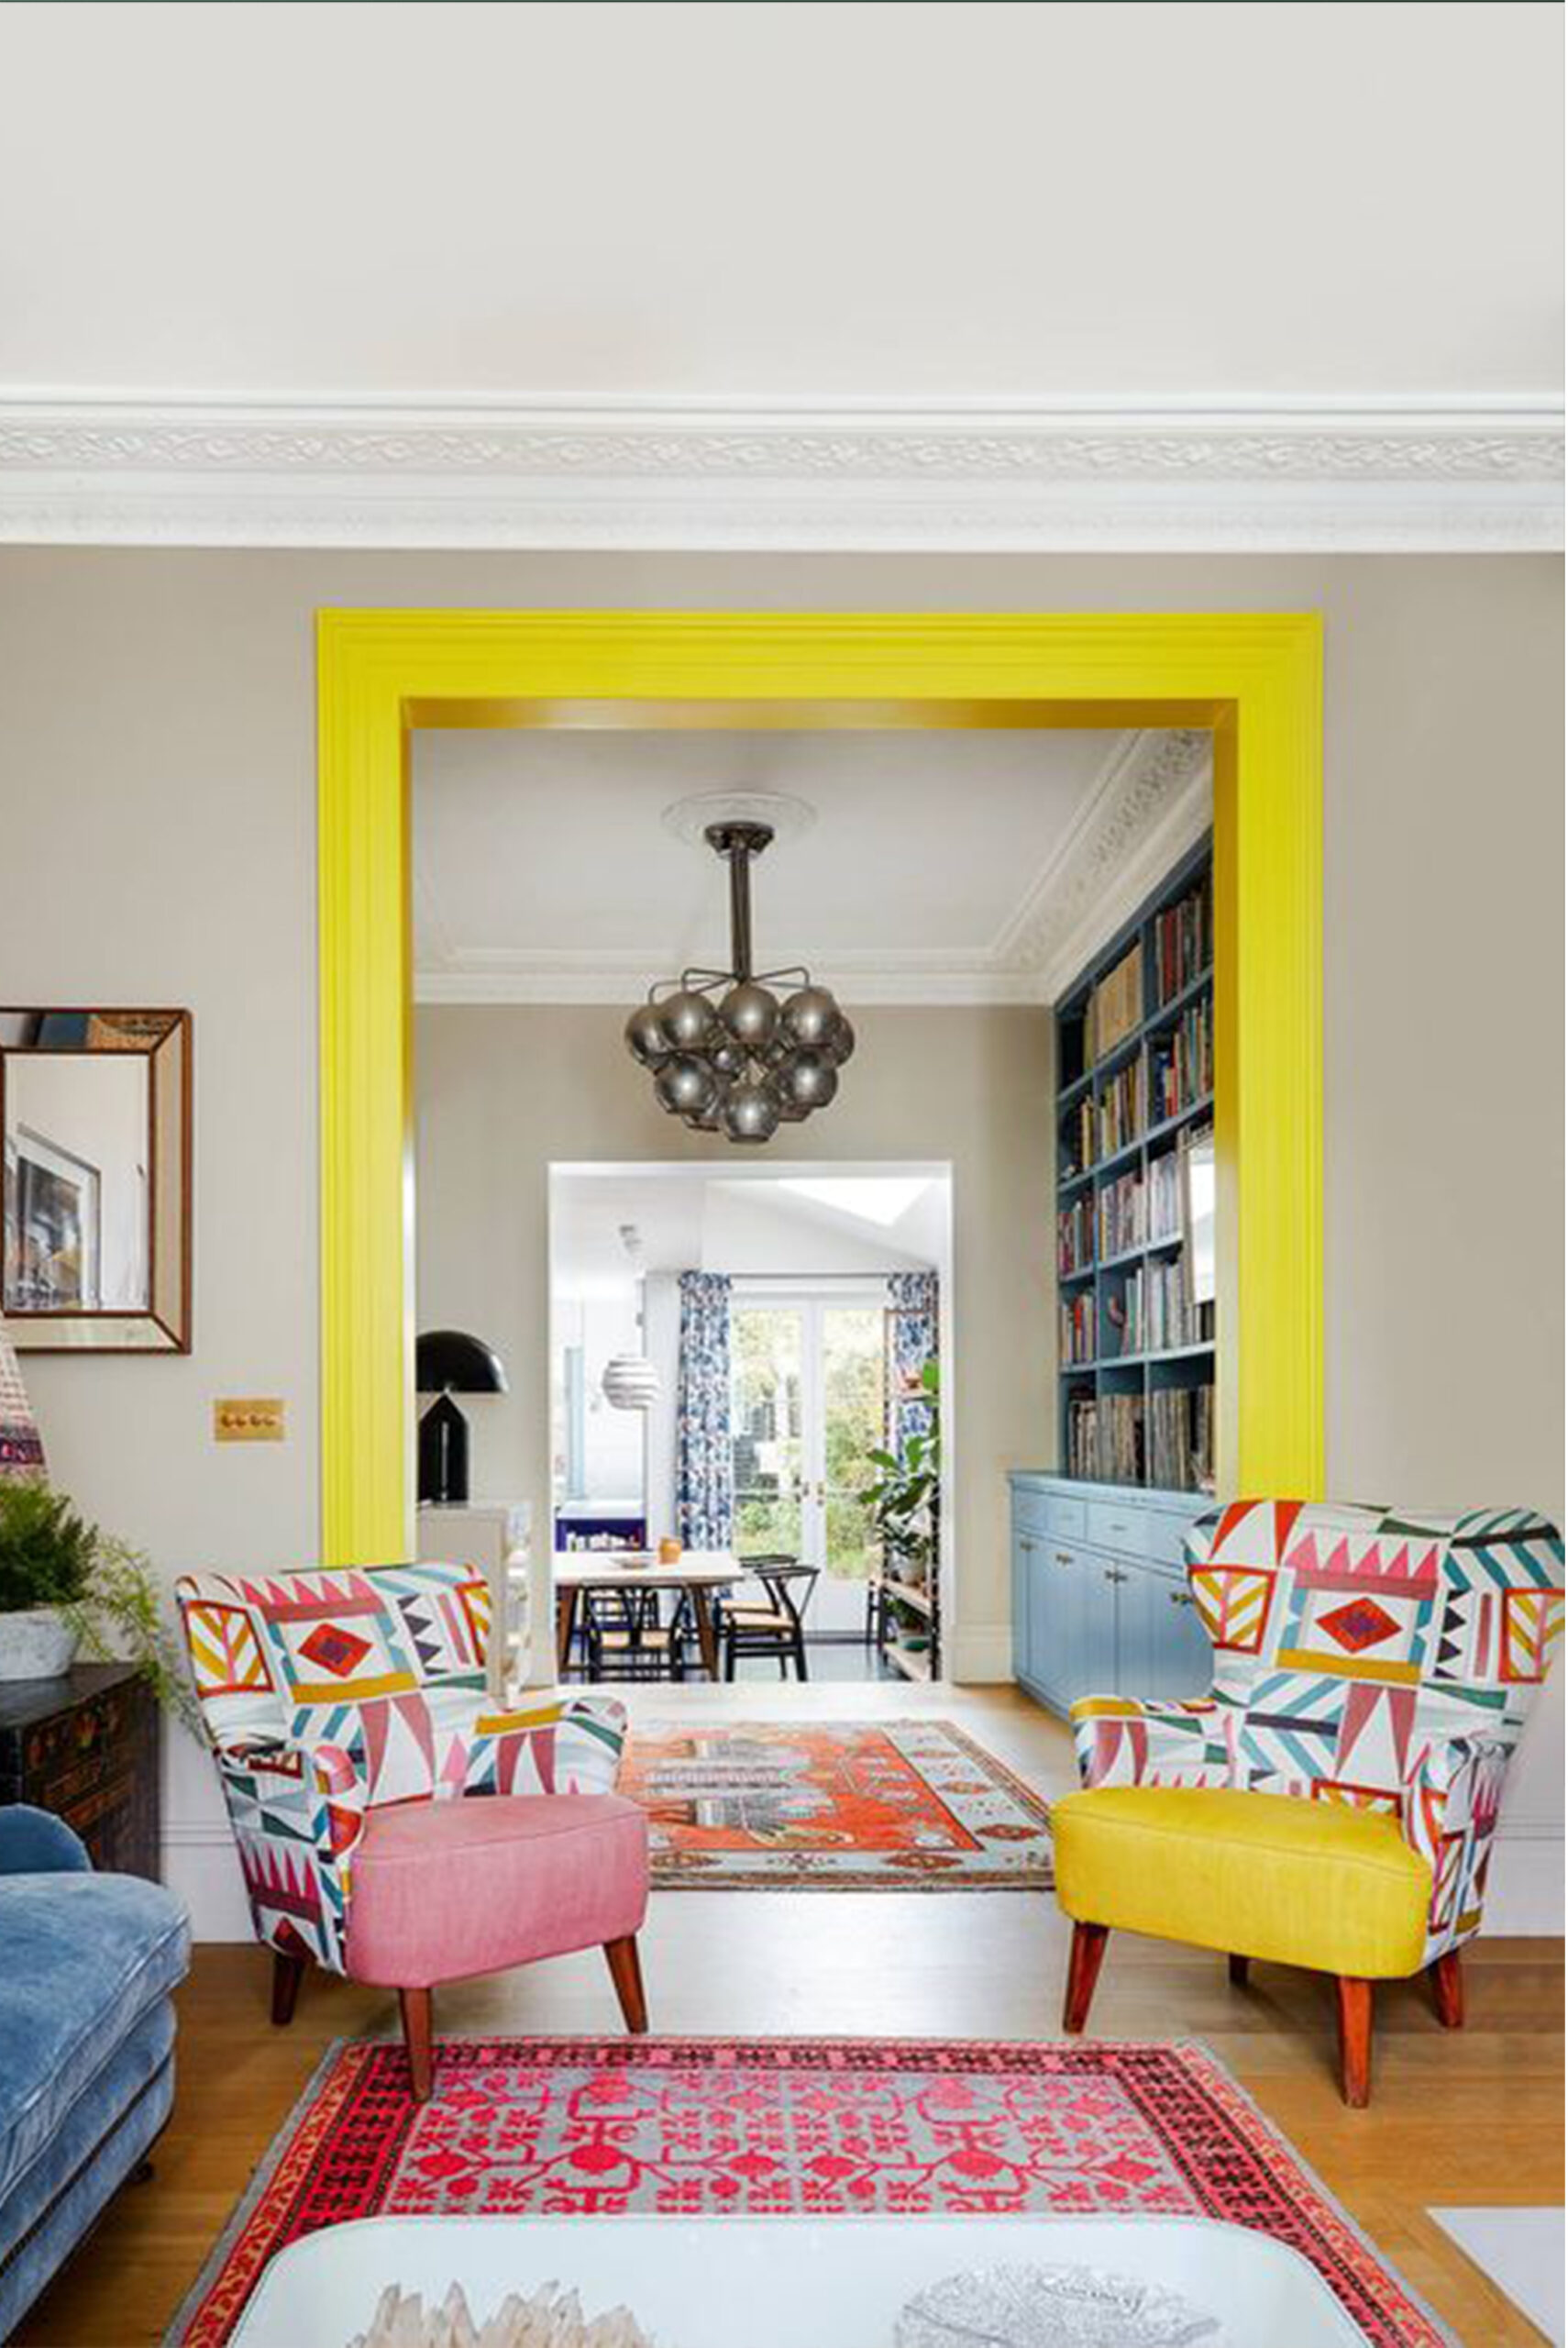 5 Unusual but wonderful ways to add colour in your interiors